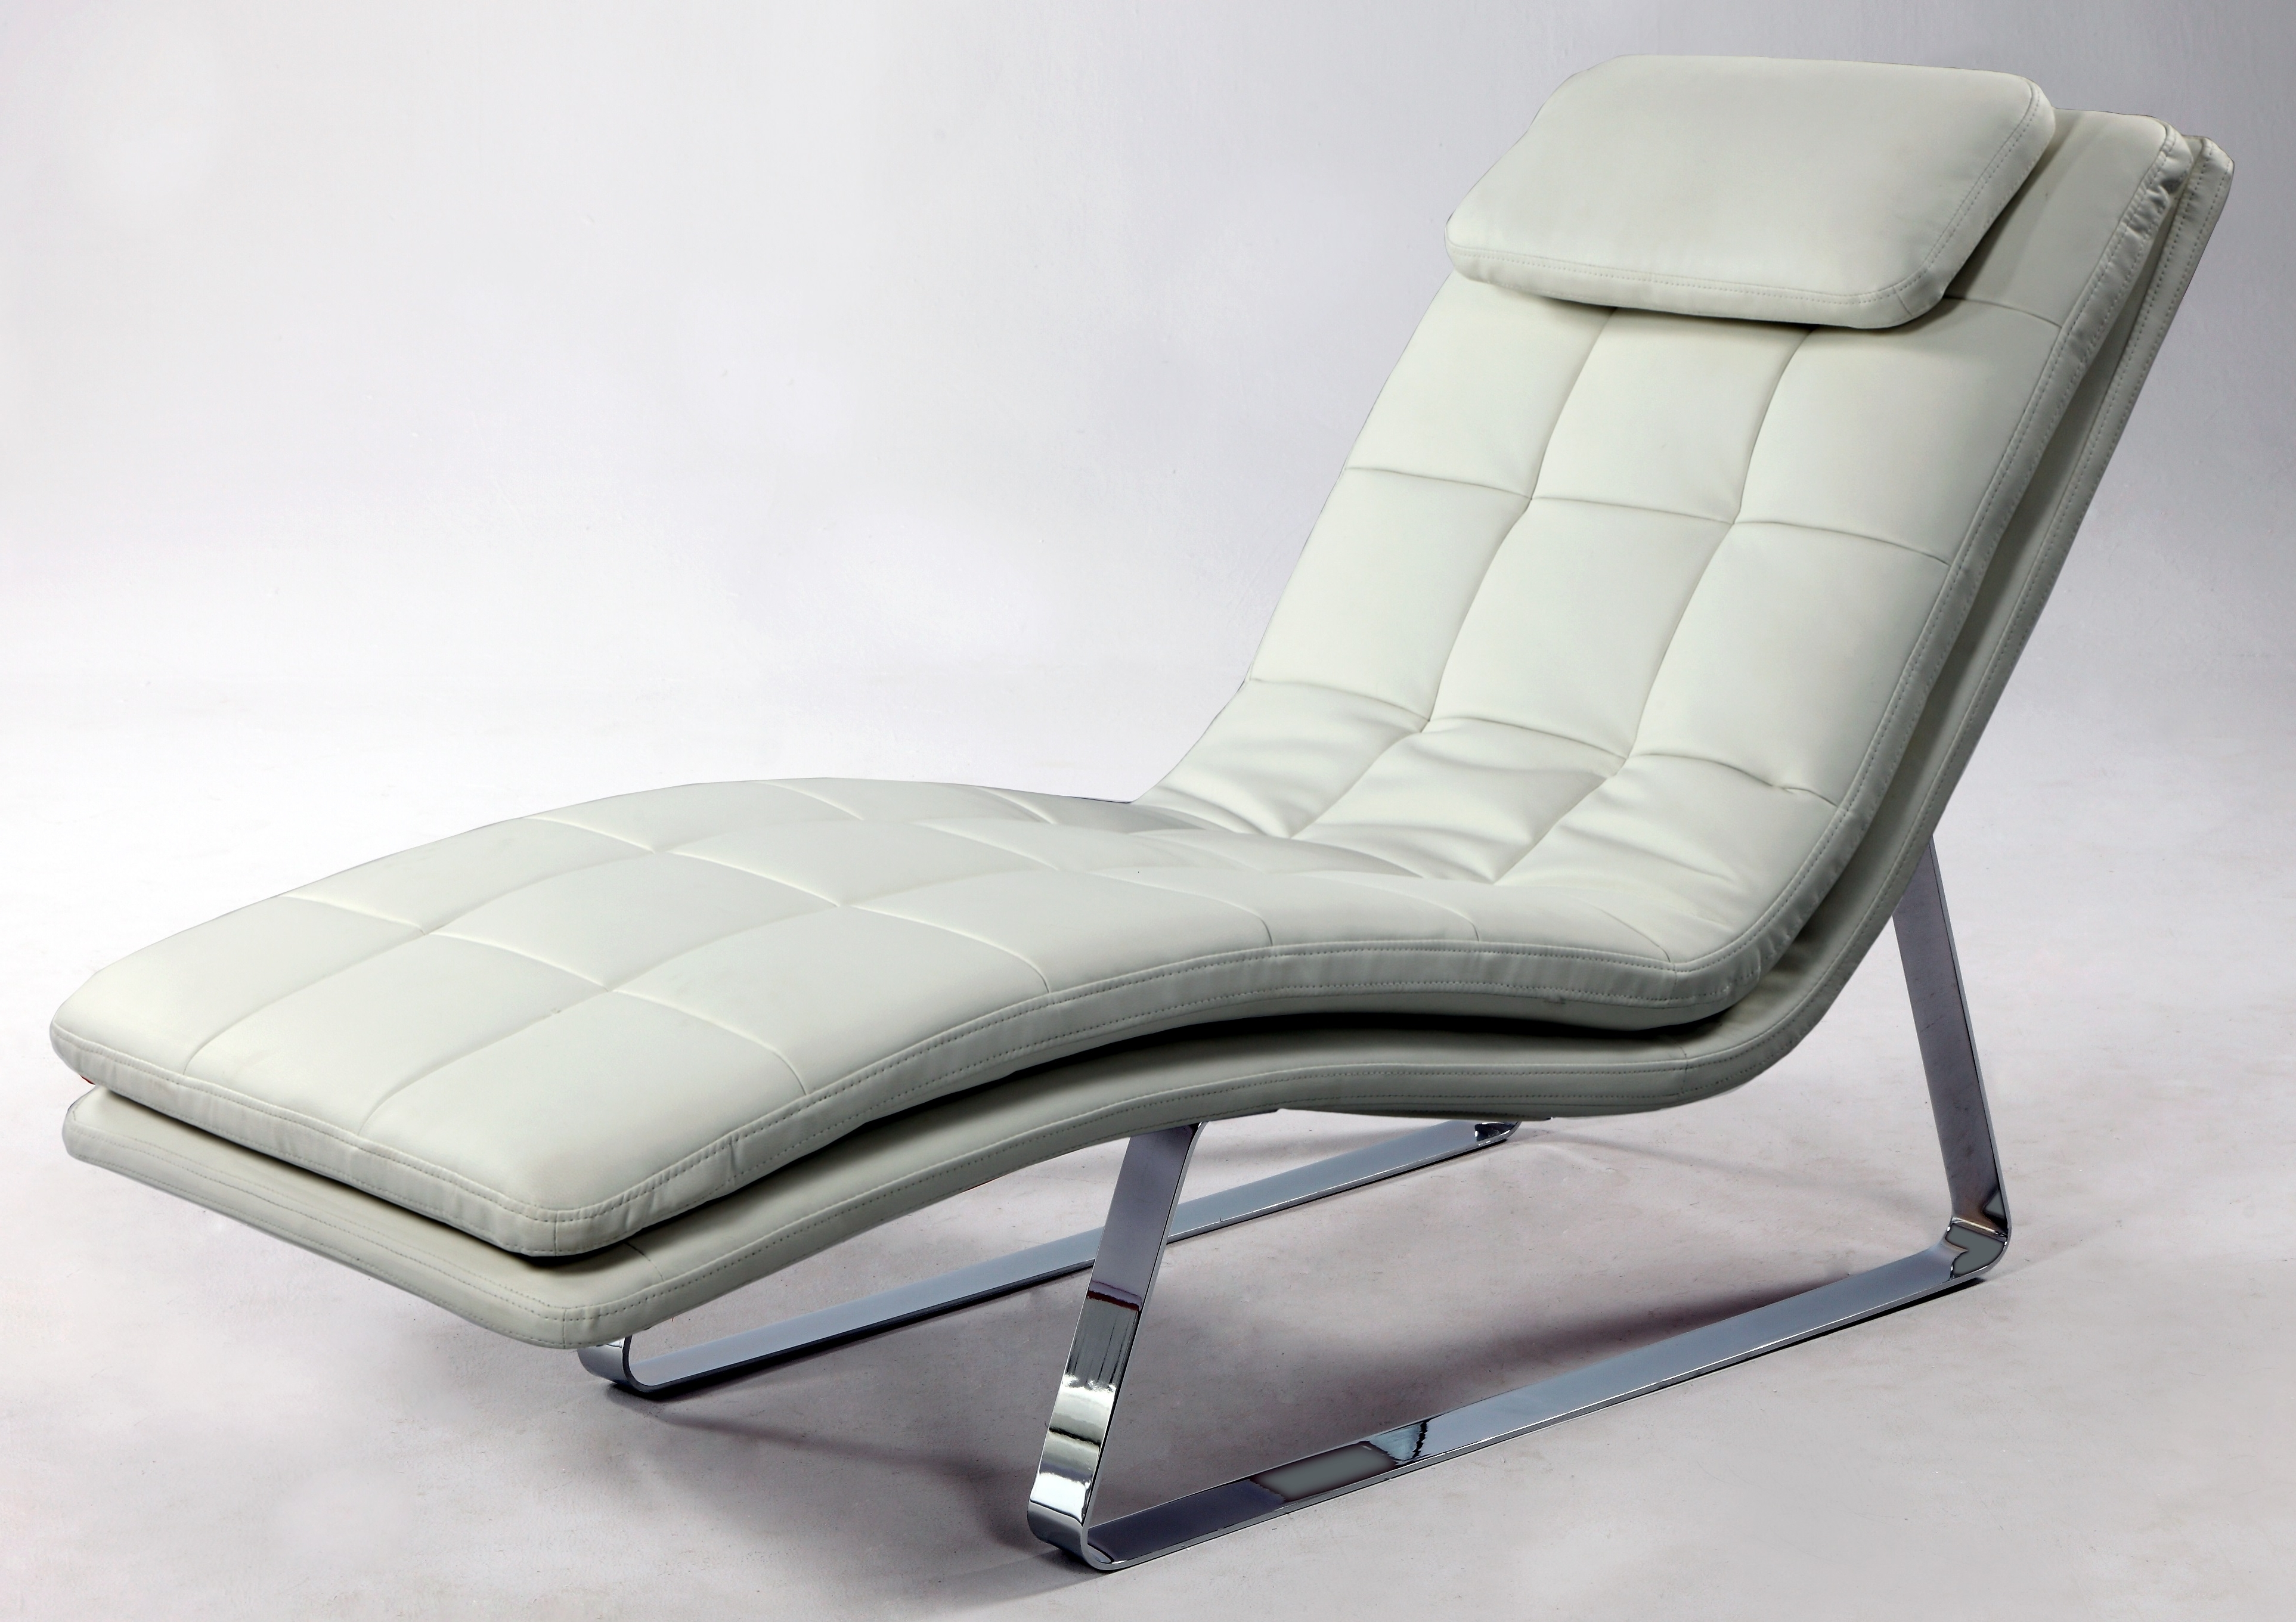 White Chaise Lounges Throughout Favorite Full Bonded Leather Tufted Chaise Lounge With Chrome Legs New York (View 8 of 15)